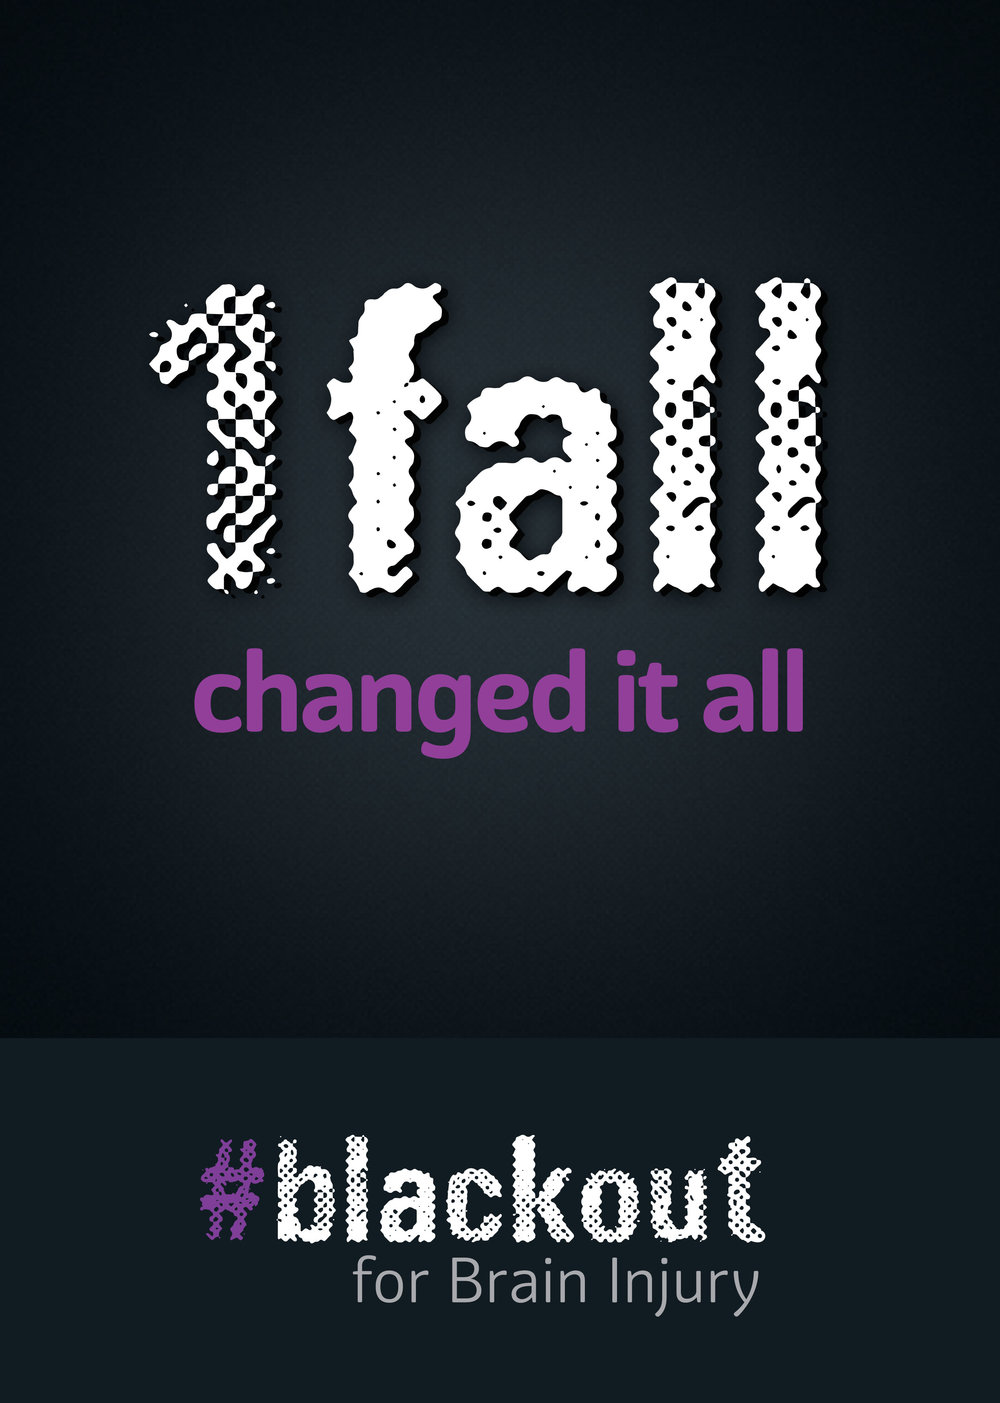 Blackout posters-2.jpg